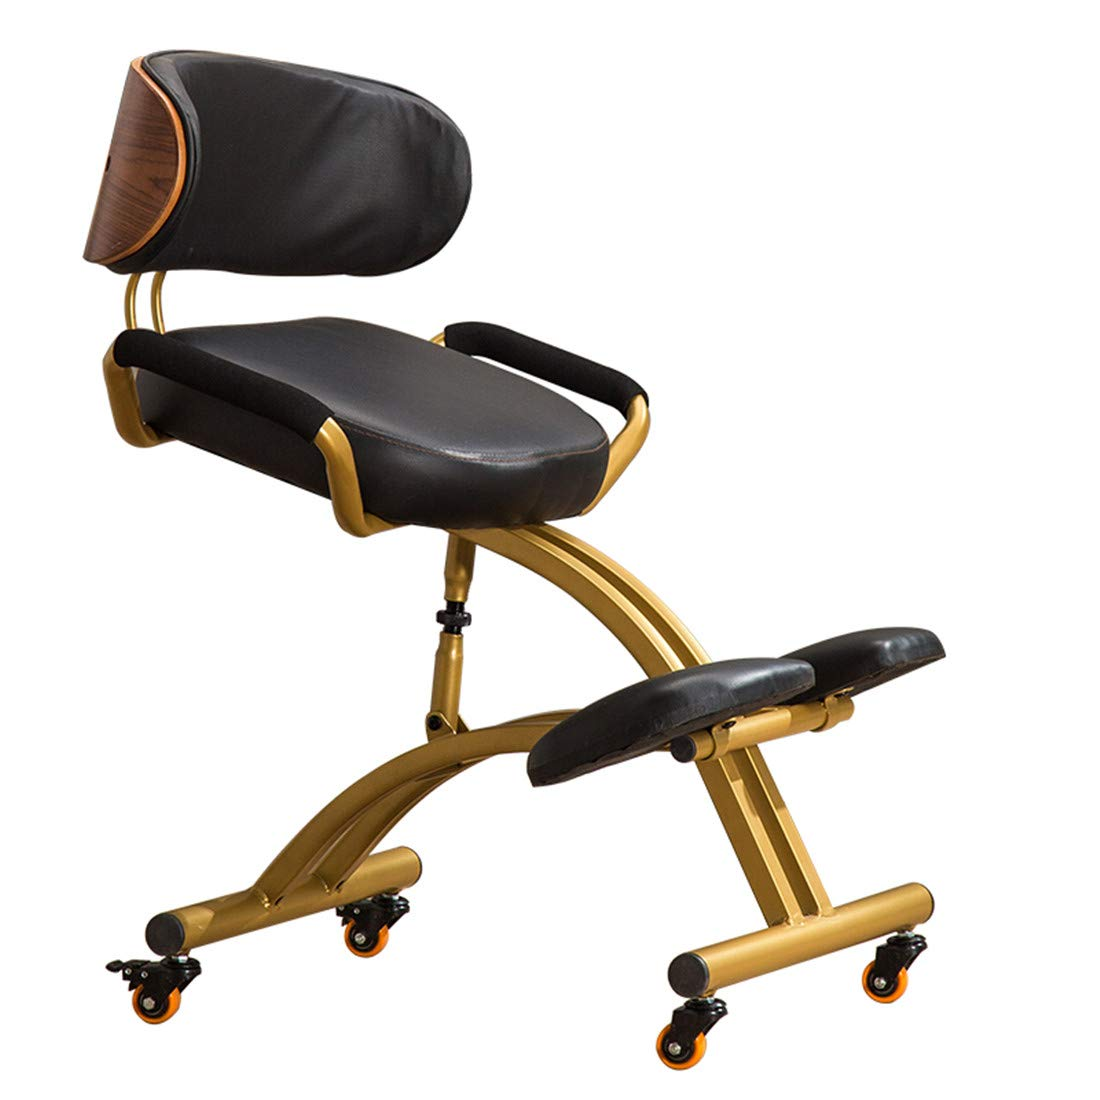 Kneeling Chairs Ergonomic Adjustable Designed with Handle Cushions Posture with an Angled Office Seat Helps Prevent Coccyx Pain by AJ ZJ Kneeling Chairs